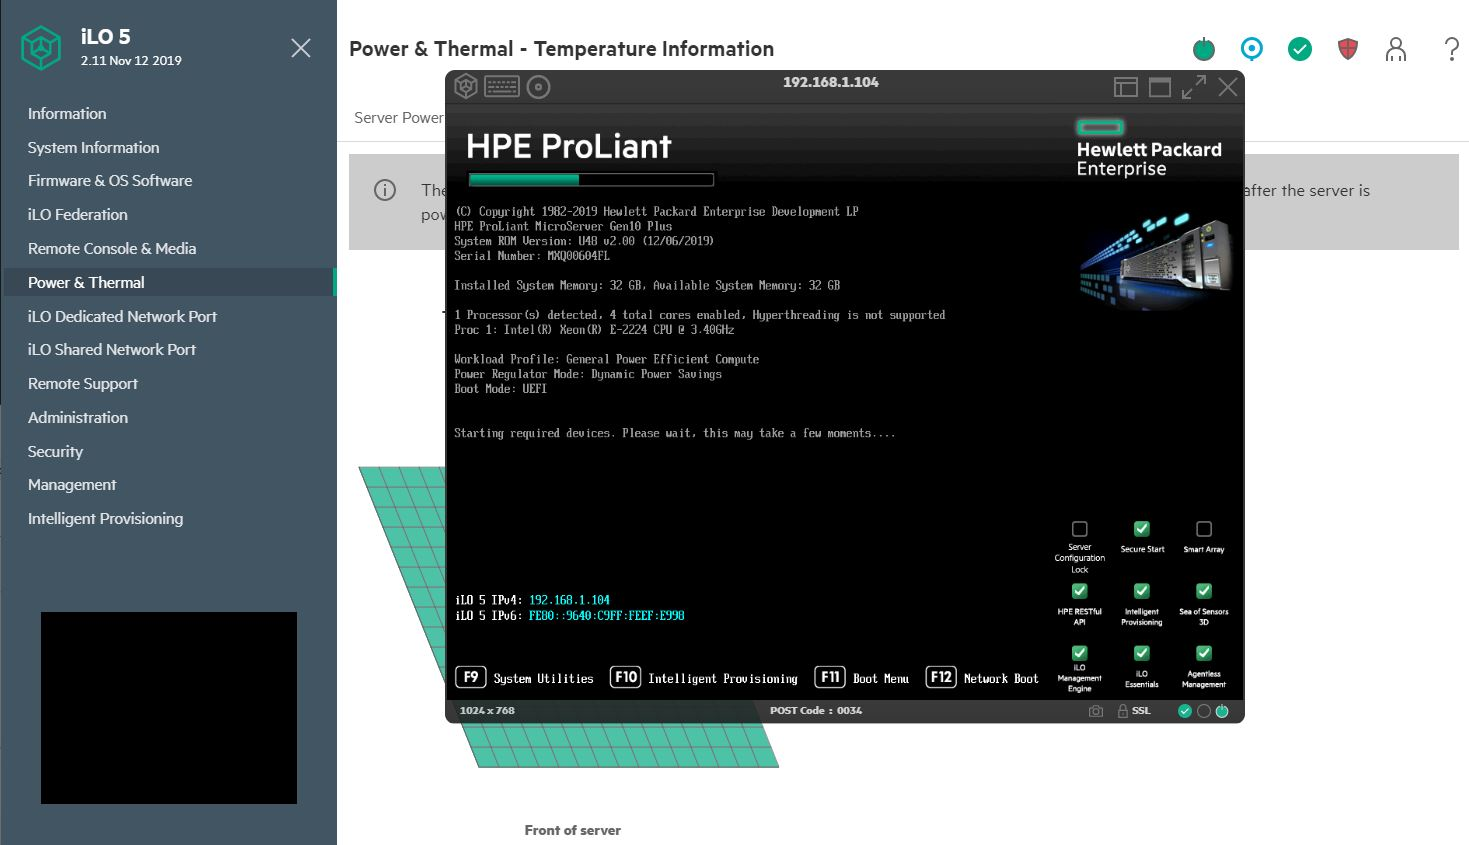 HPE ProLiant MicroServer Gen10 Plus ILO 5 IKVM With Remote Media